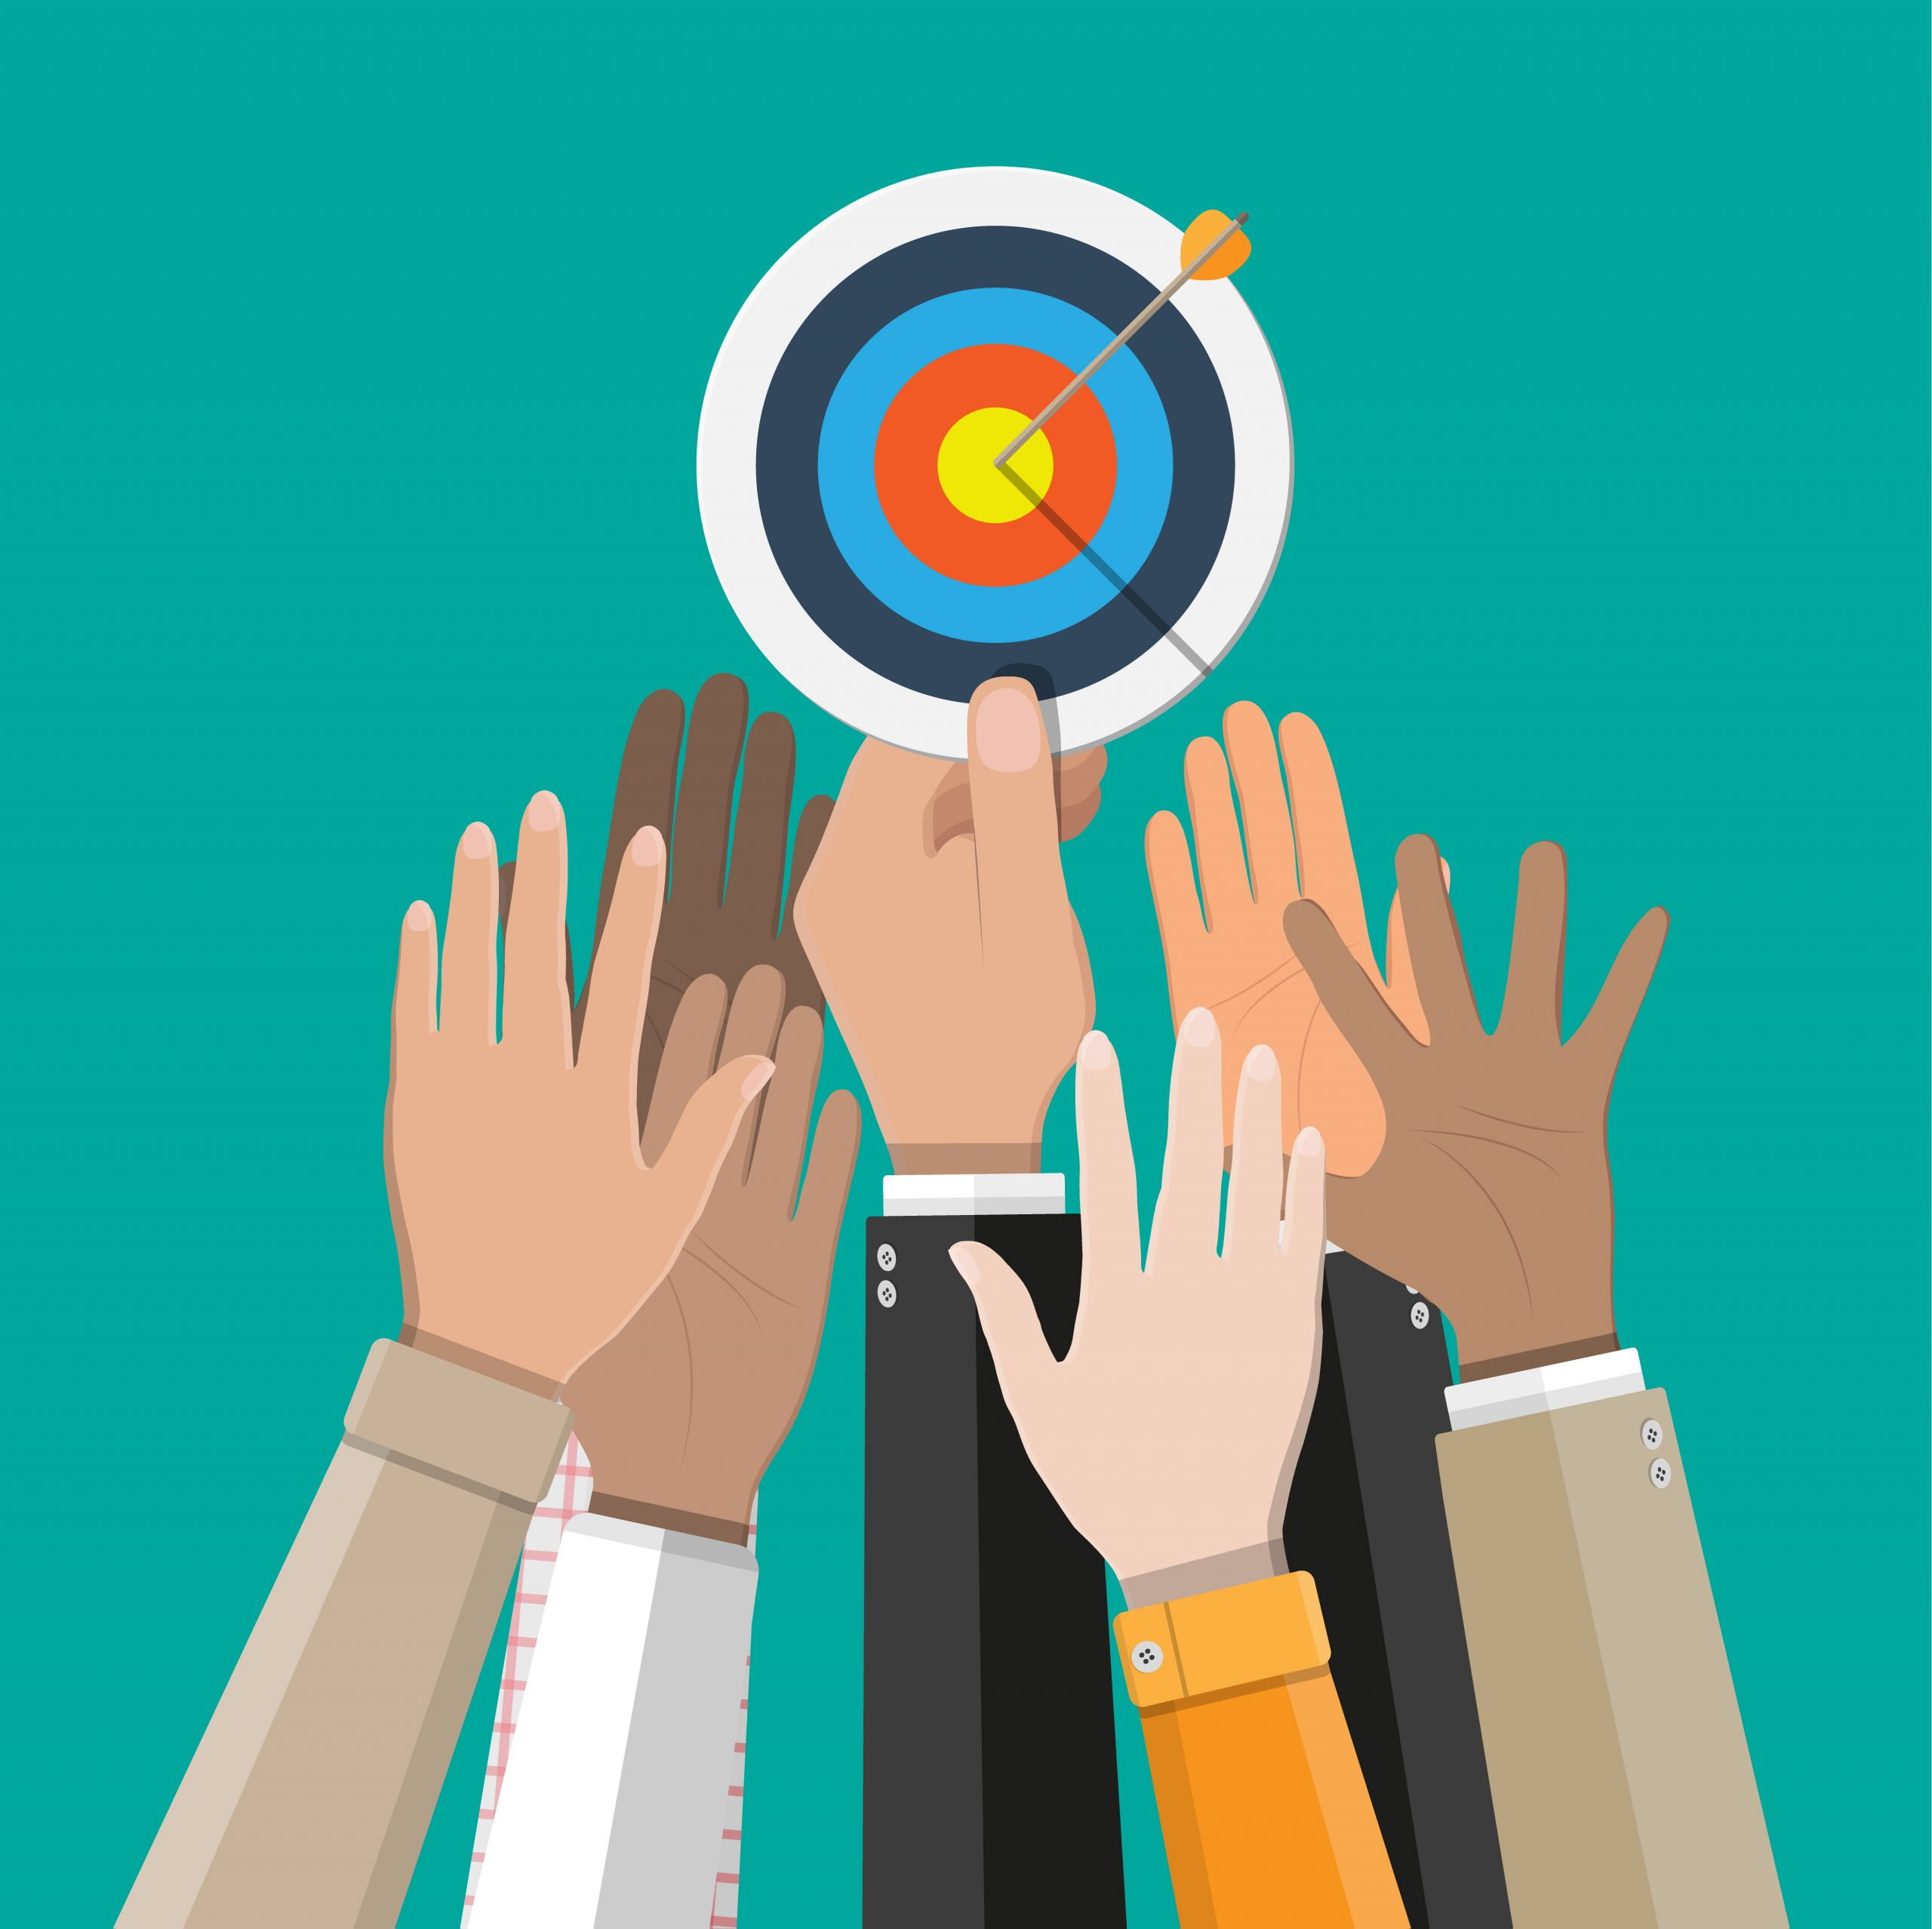 Group of hands reaching up to touch a target with an arrow in the bullseye